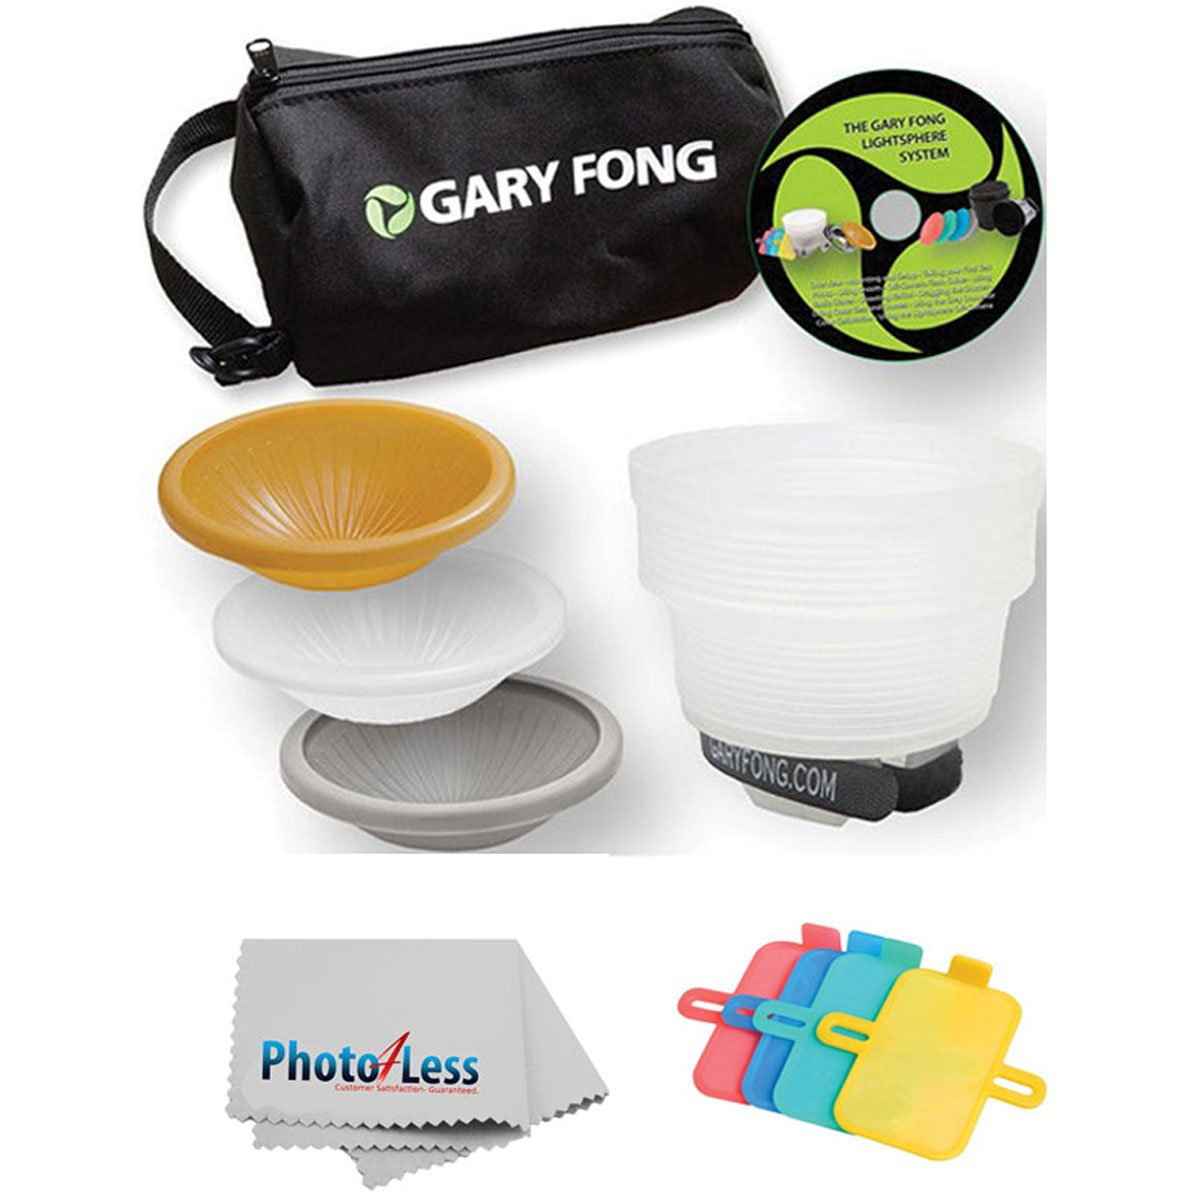 Gary Fong Lightsphere Collapsible Wedding & Event Lighting Kit With 4-piece Color Gel Set + Cleaning Cloth For CANON 540EX 420EX 550EX 430EX 580EX 580EX II 430EX II 270EX 380EX 320EX 600EX-RT by Gary Fong